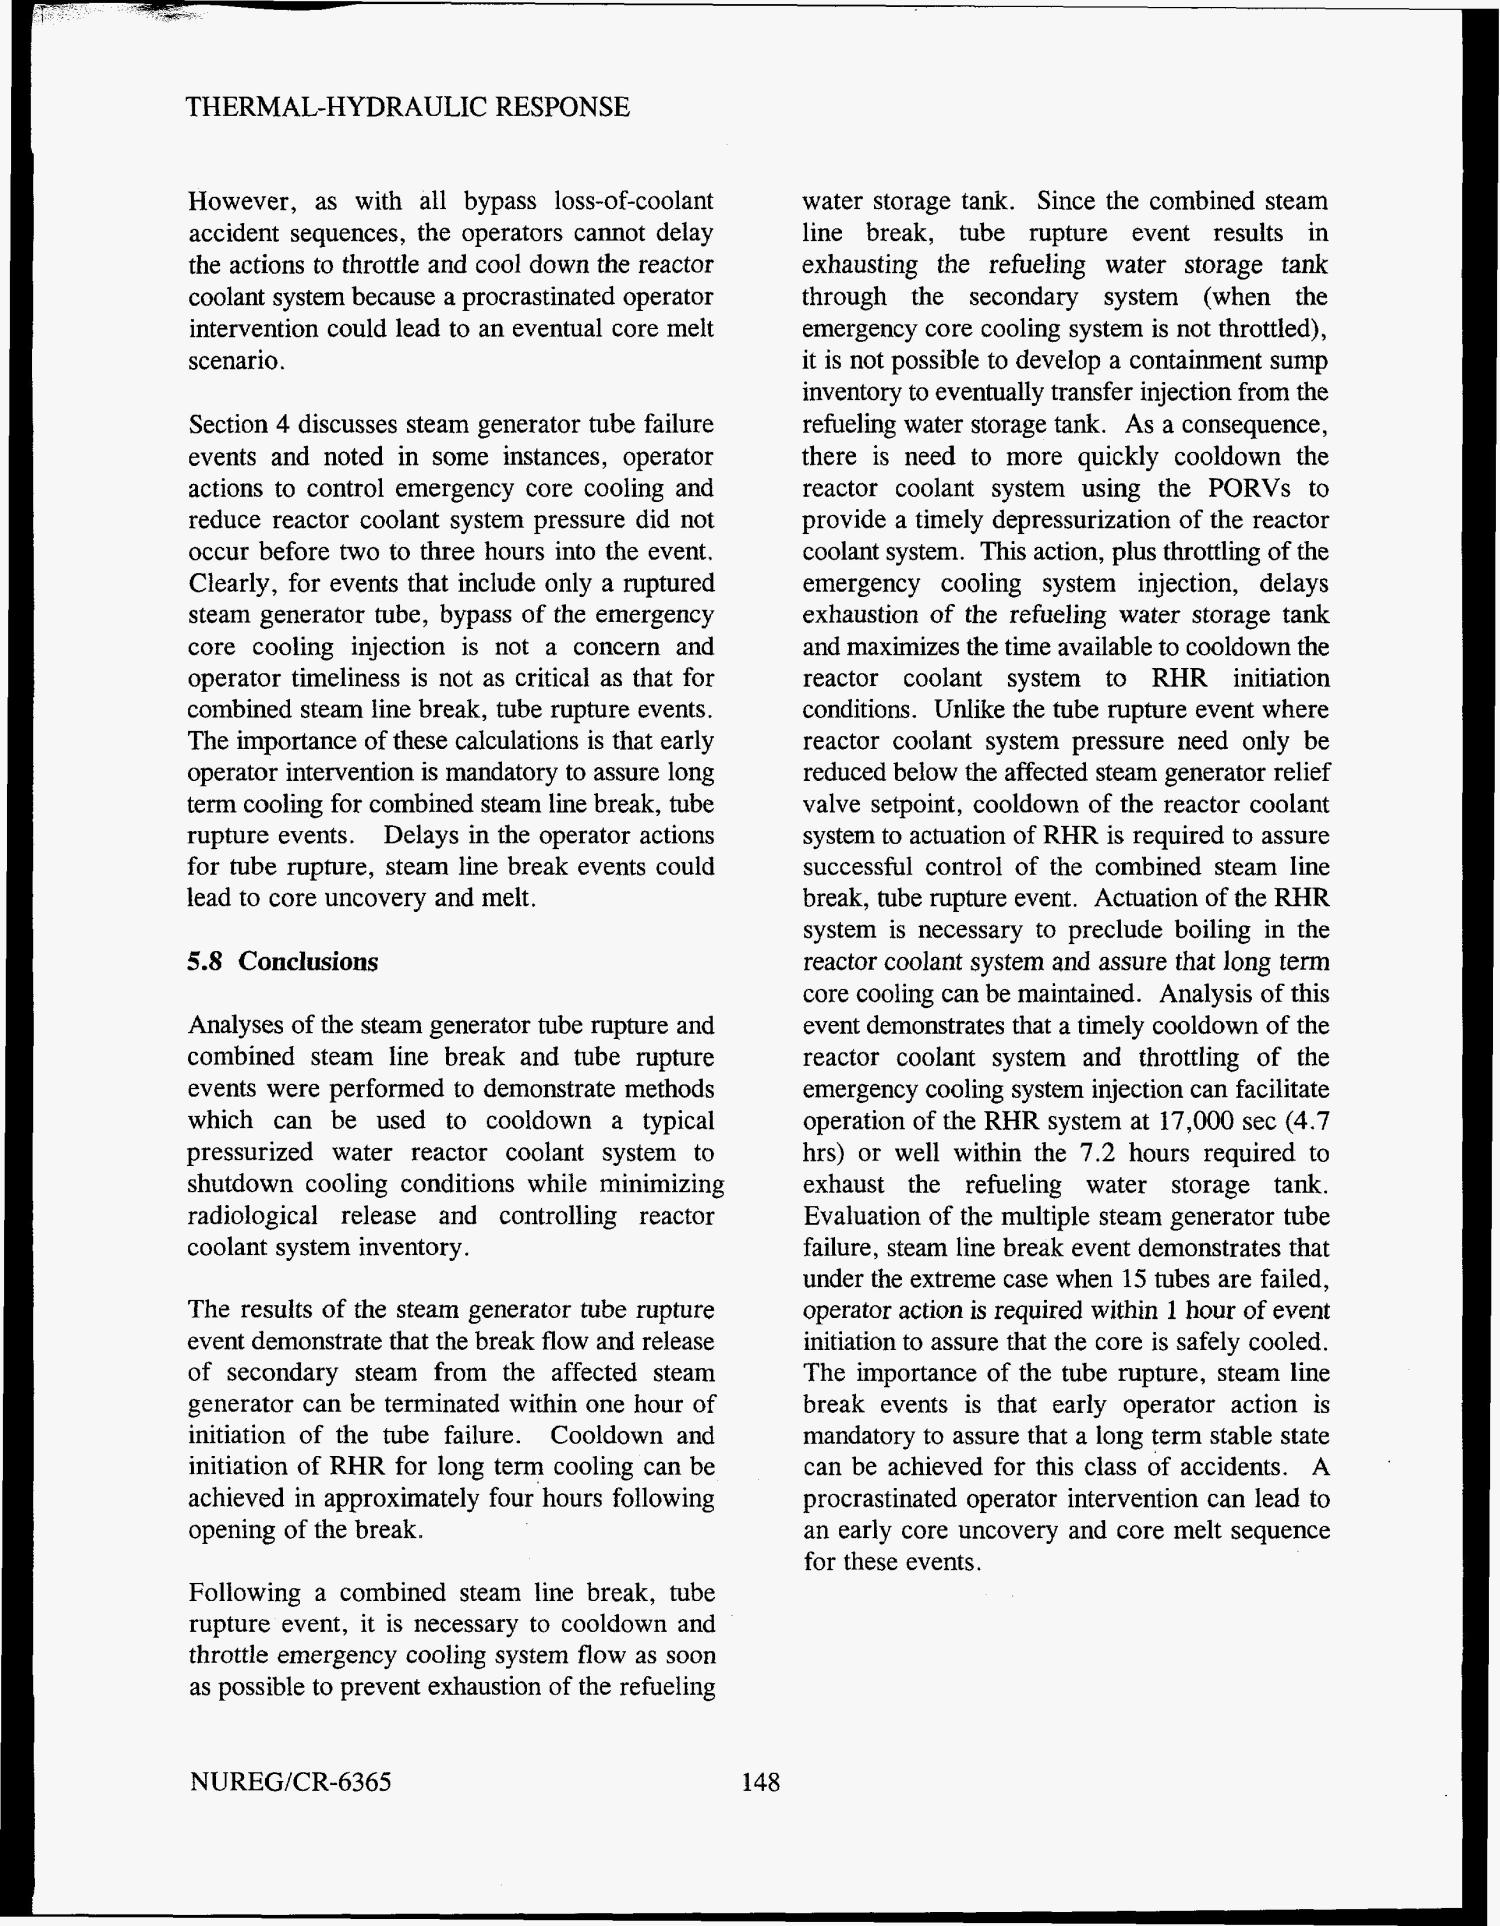 Steam generator tube failures - Page 183 of 307 - Digital Library